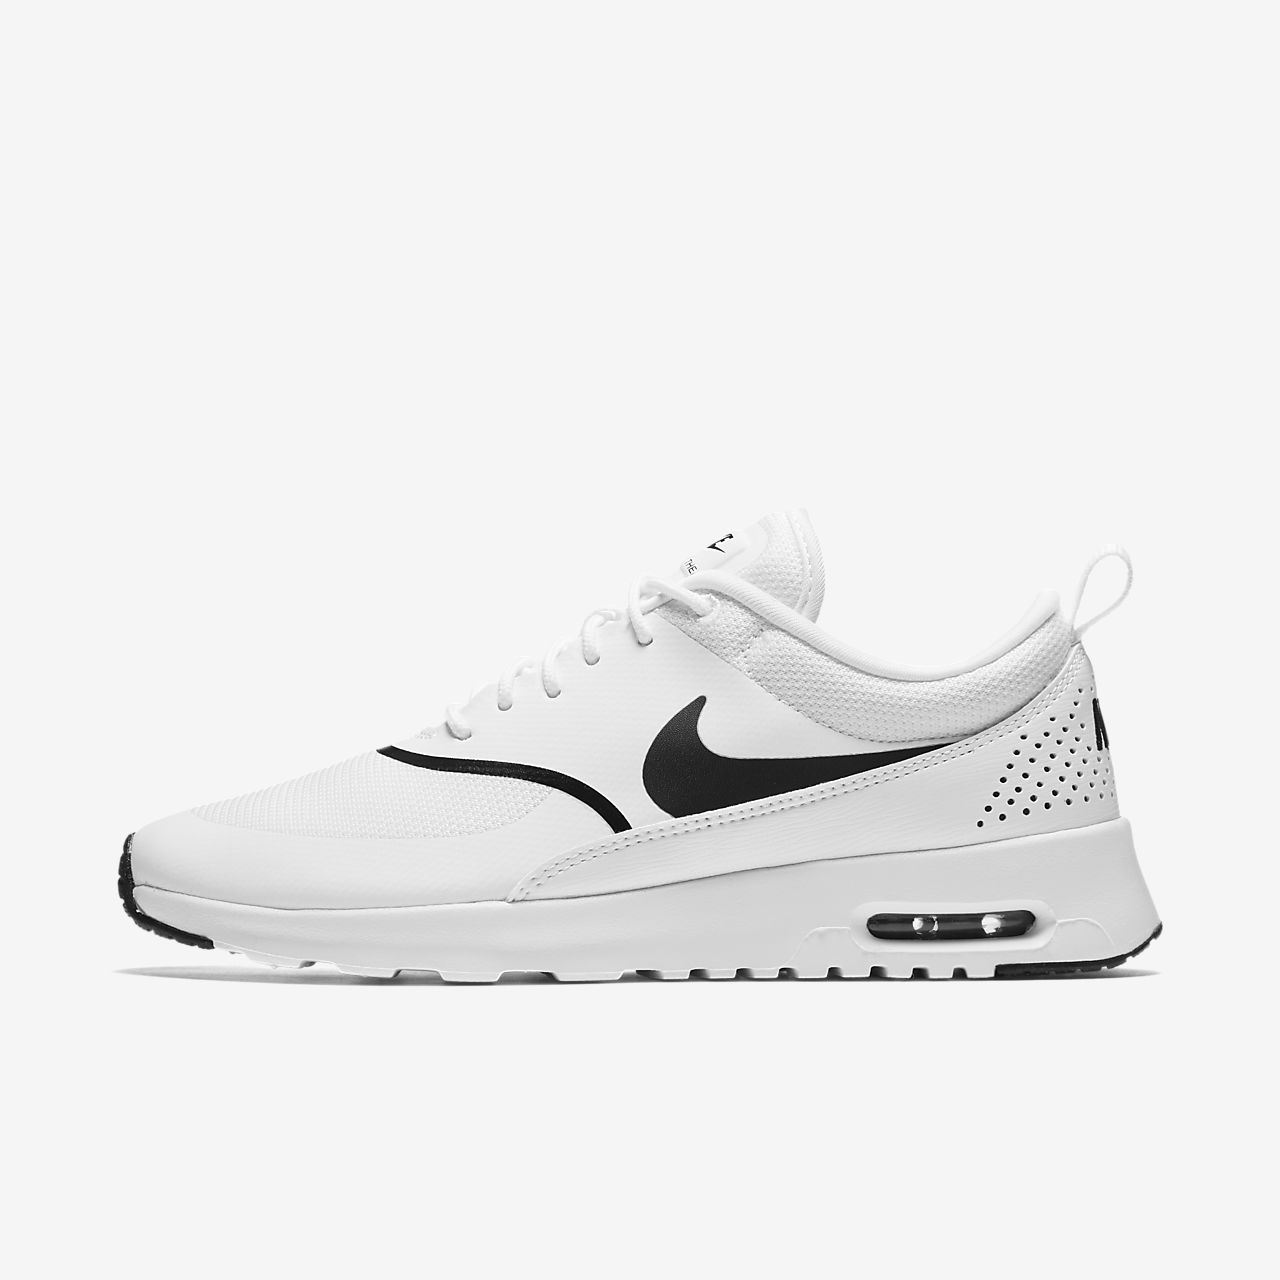 reputable site 0c905 30b22 ... Nike Air Max Thea Women s Shoe